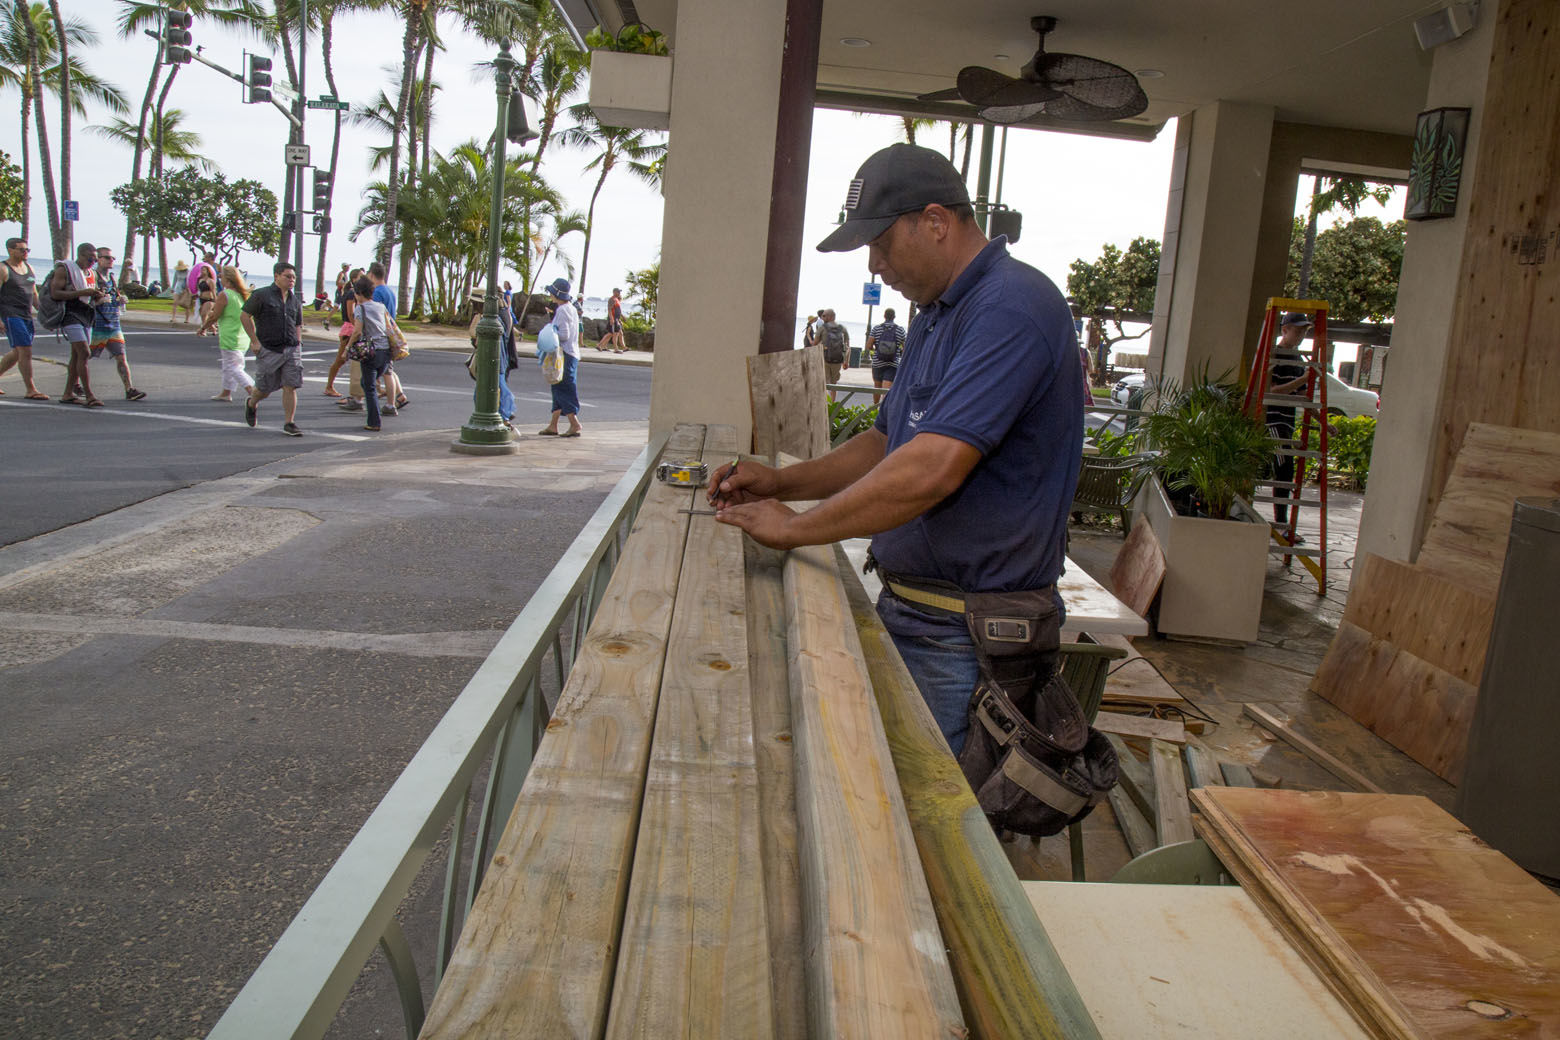 HONOLULU, HI - AUGUST 22:    Yamasaki Construction worker, foreman Nathan Koikoinui,  measures plywood to board up McDonalds multiple plate glass windows in preparation for Hurricane Lane on Kalaukaua Ave on Wednesday, August 22, 2018 in Honolulu, Hawaii. Hurricane Lane is a high-end Category 4 hurricane and remains a threat to the entire island chain. (Photo by Kat Wade/Getty Images)